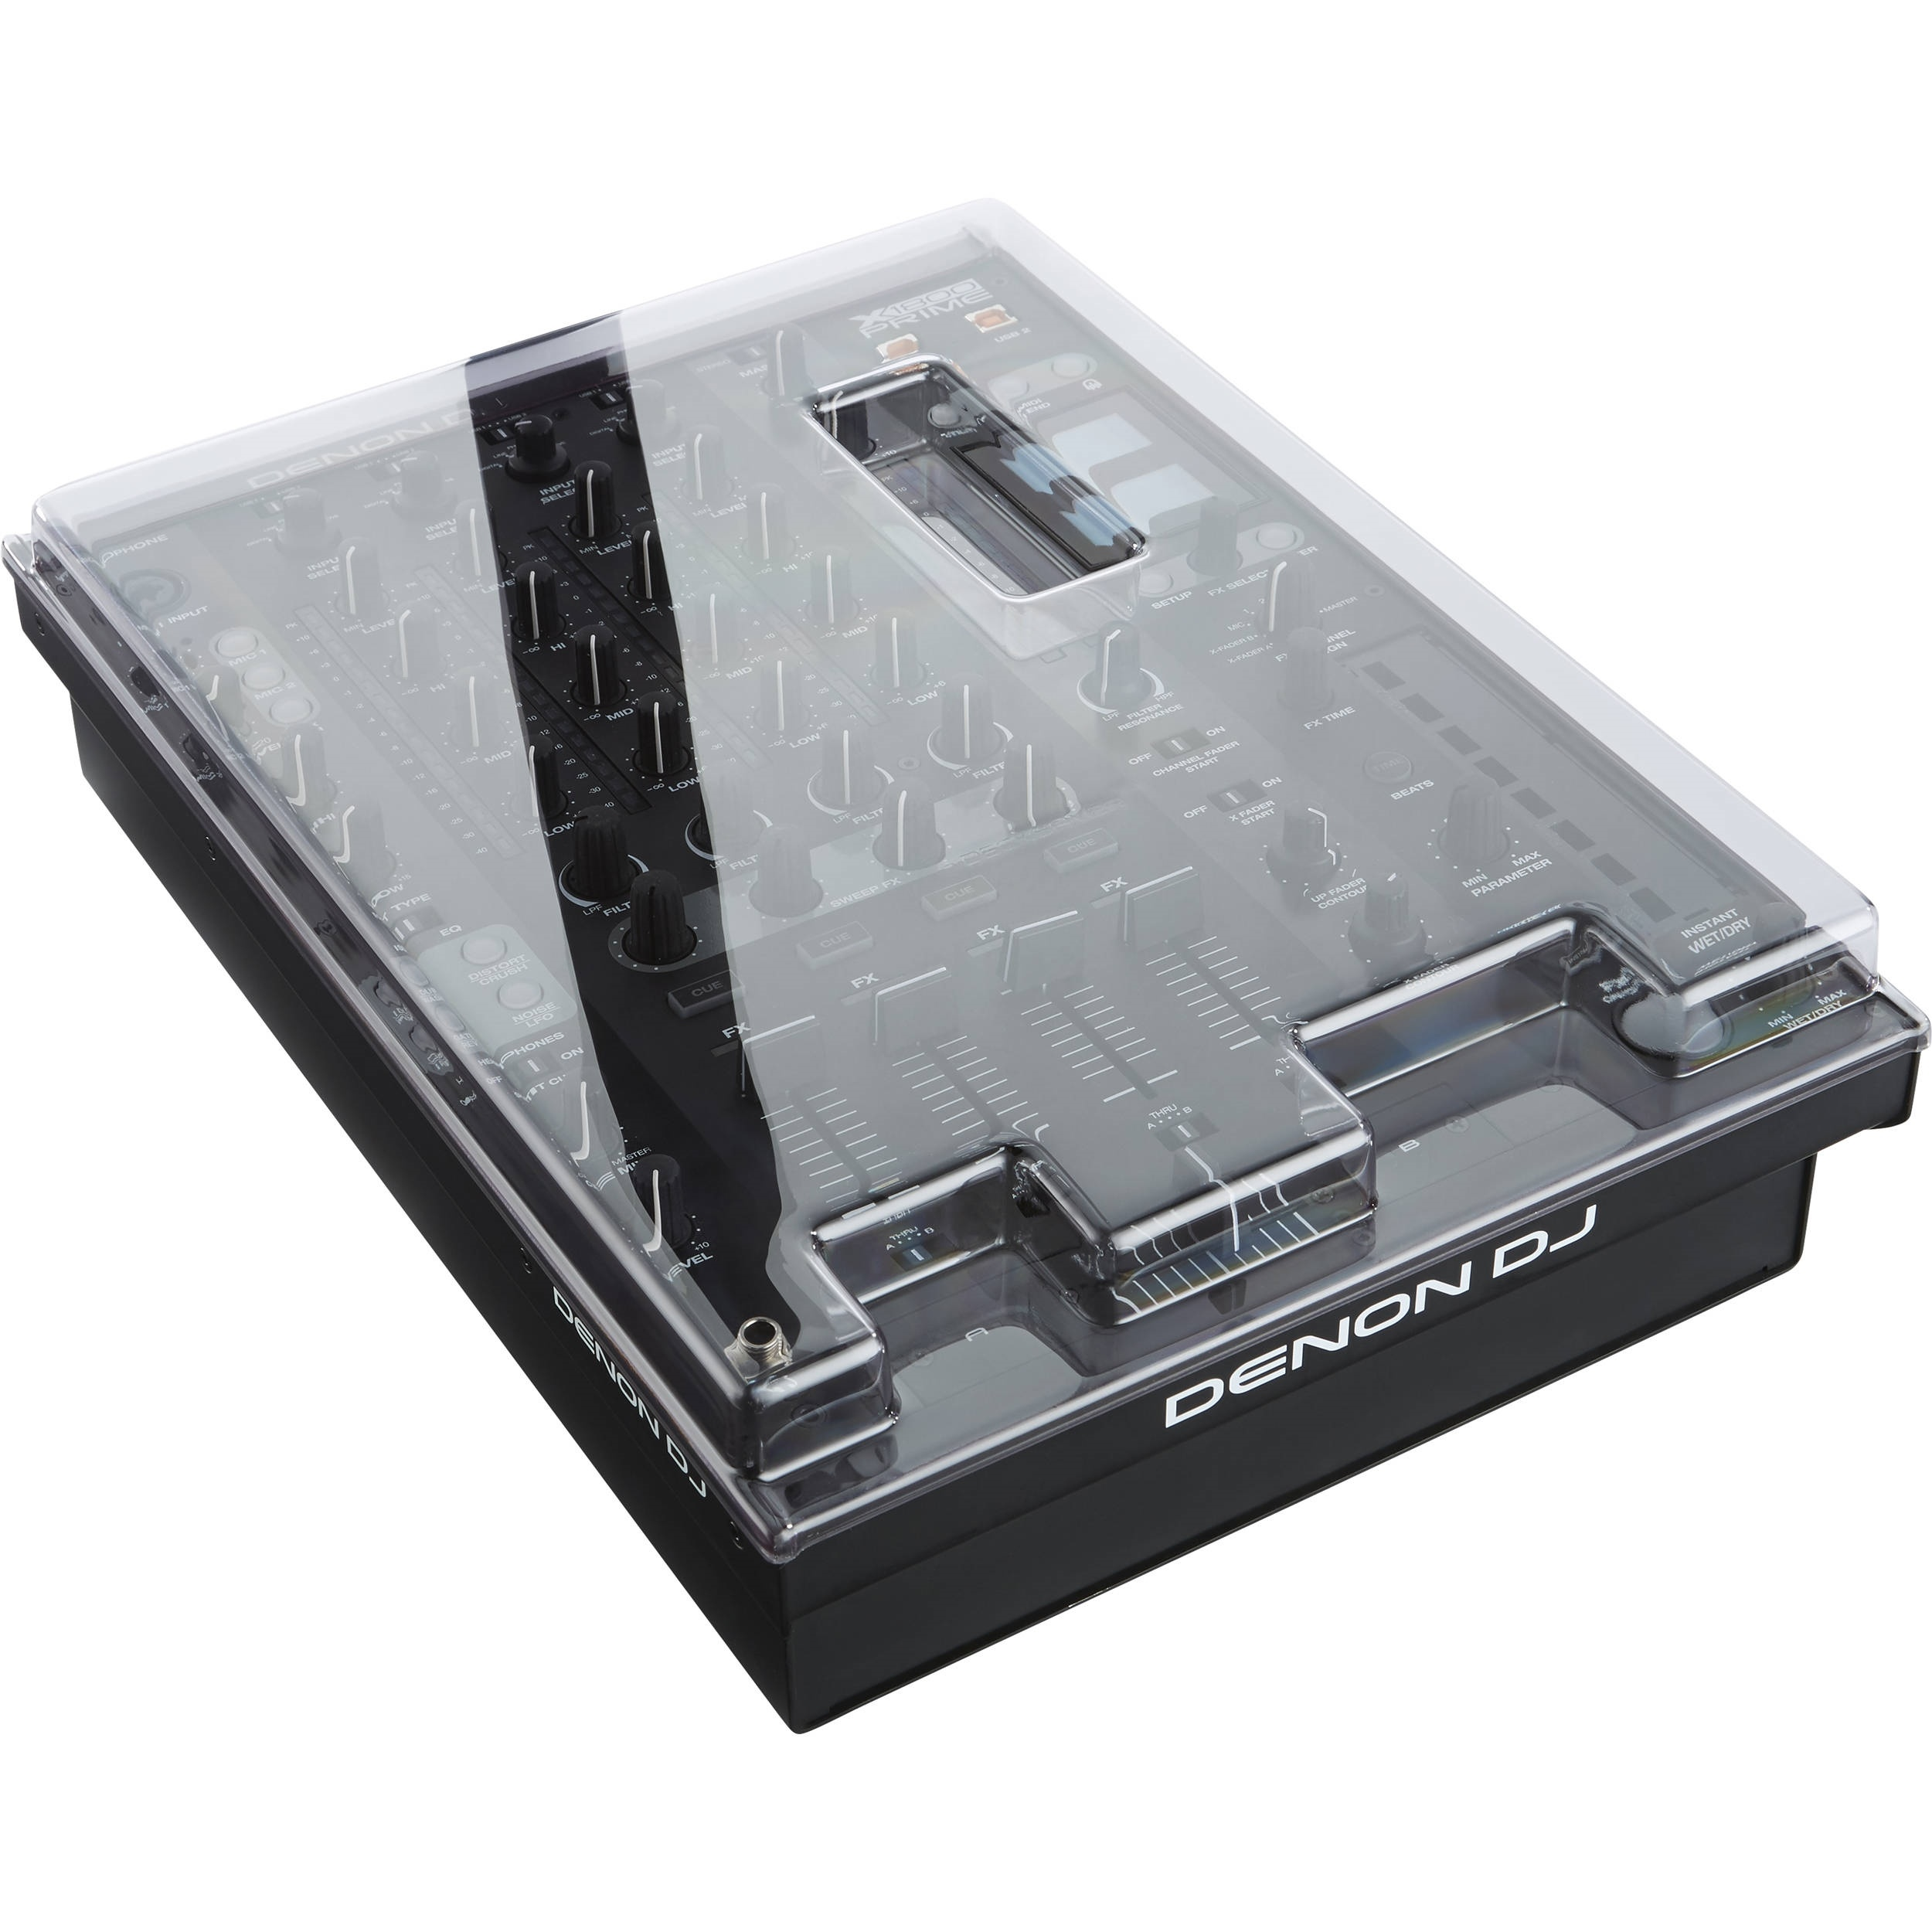 Decksaver Cover for Denon X1800 Prime Mixer (Smoked/Clear)